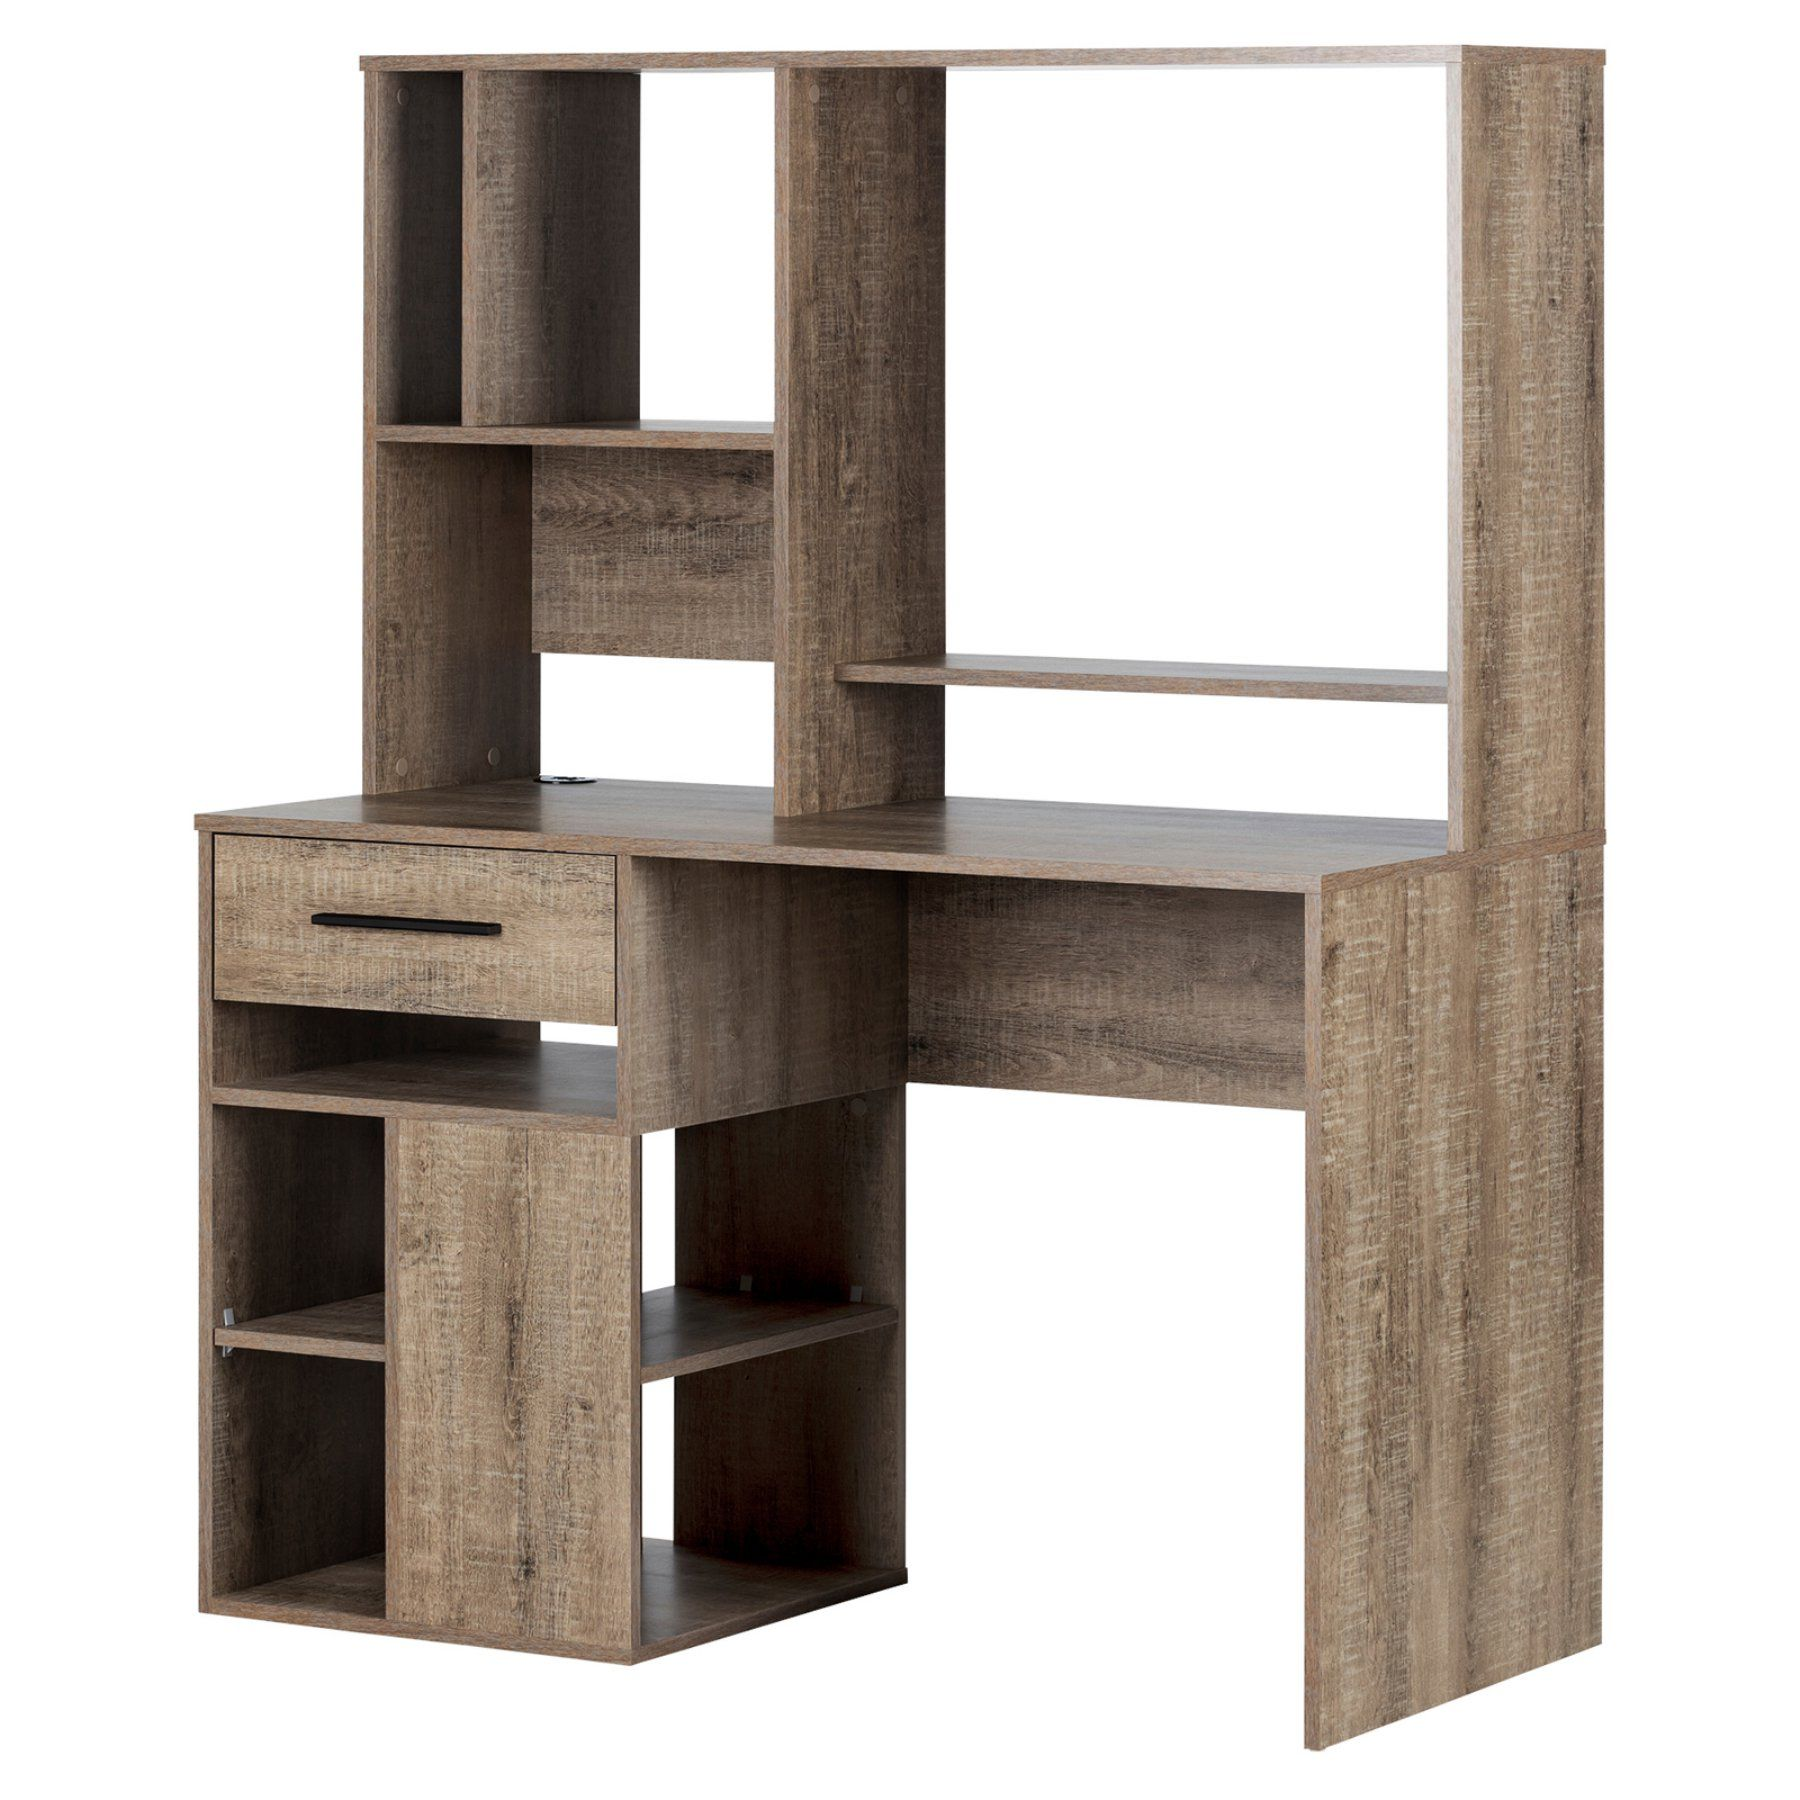 South Shore Furniture Office Cabinet Organizers